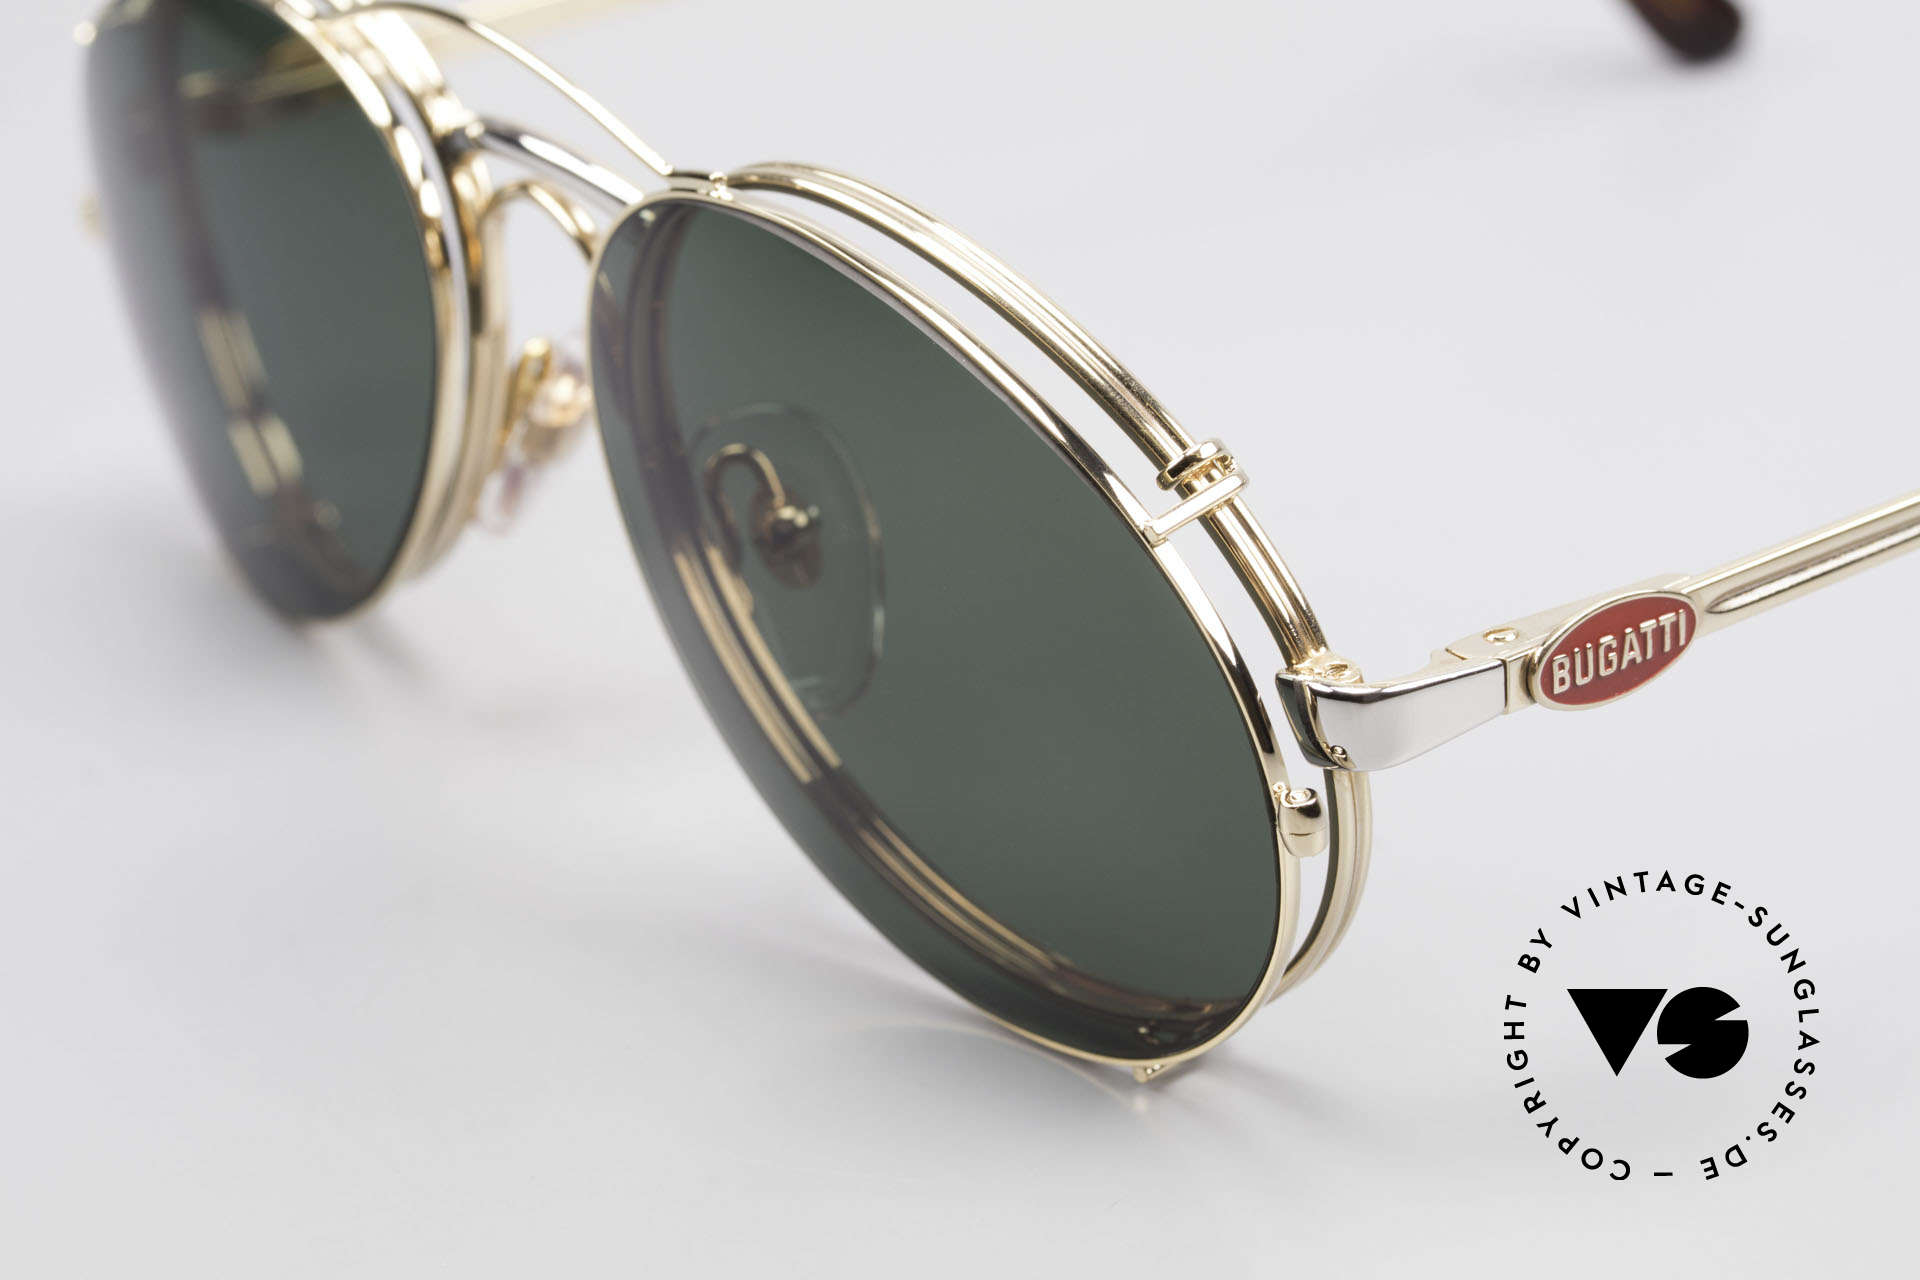 Bugatti 03308 Men's 80's Glasses With Clip On, bicolor frame (gold & silver) with practical CLIP-ON, Made for Men